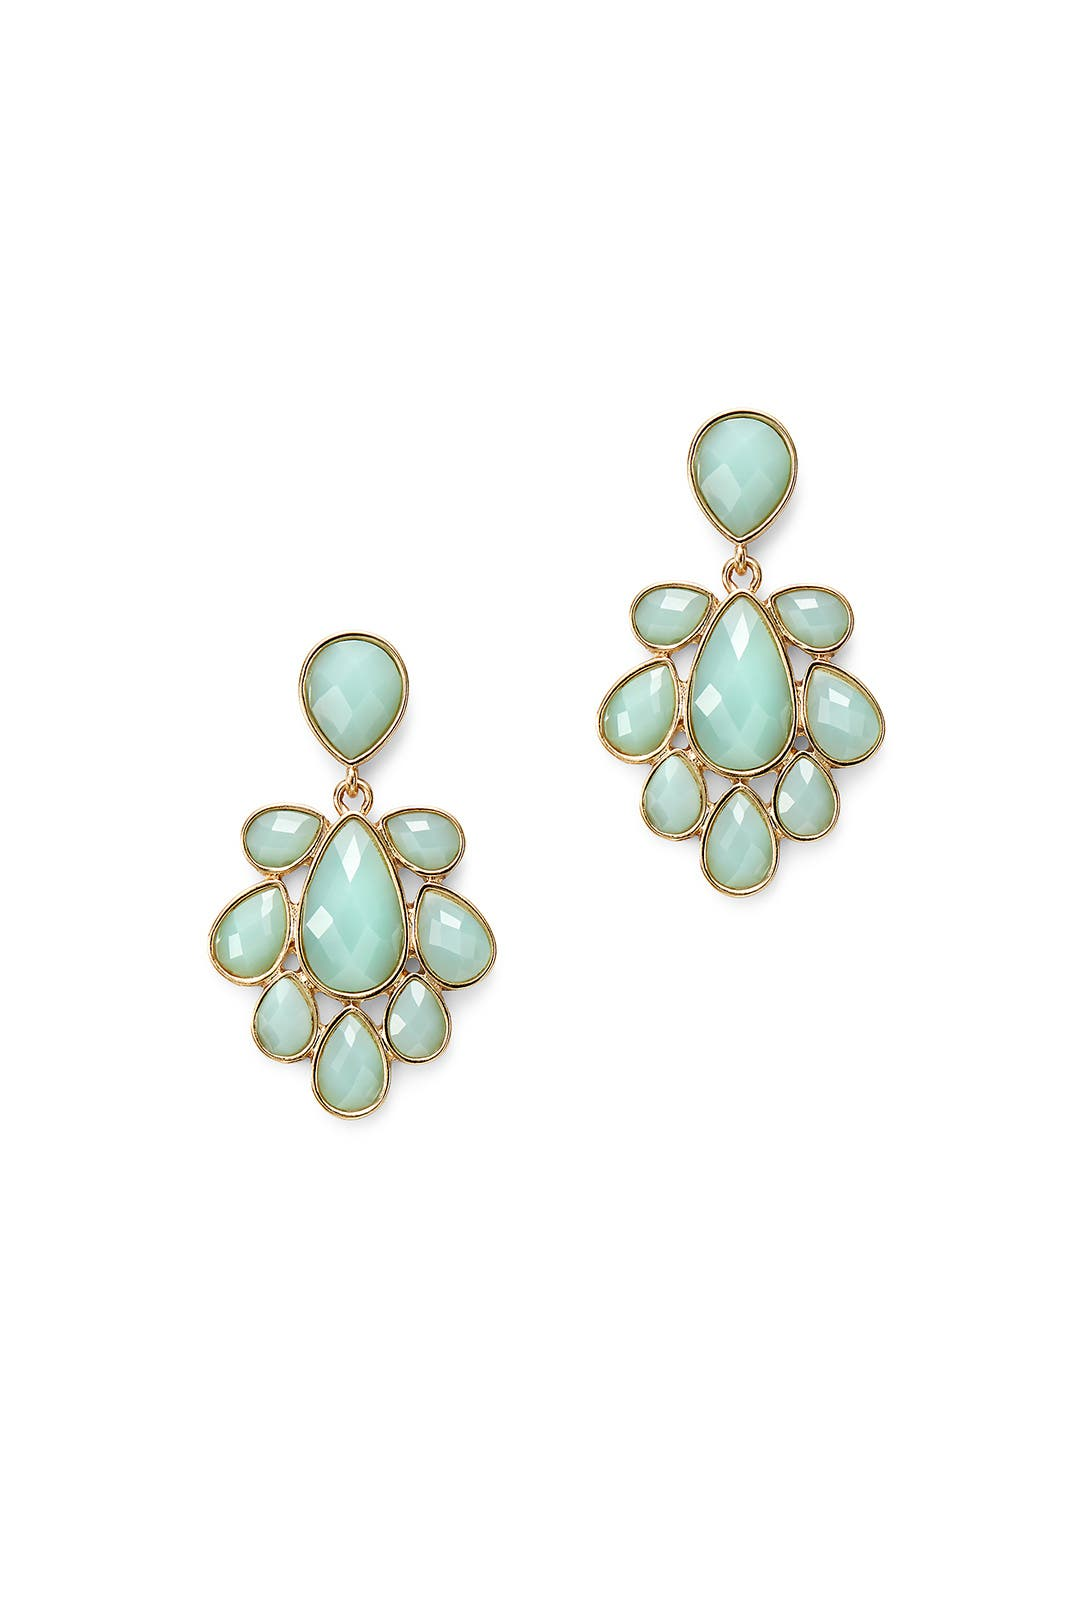 Pistachio Drops by Slate & Willow Accessories